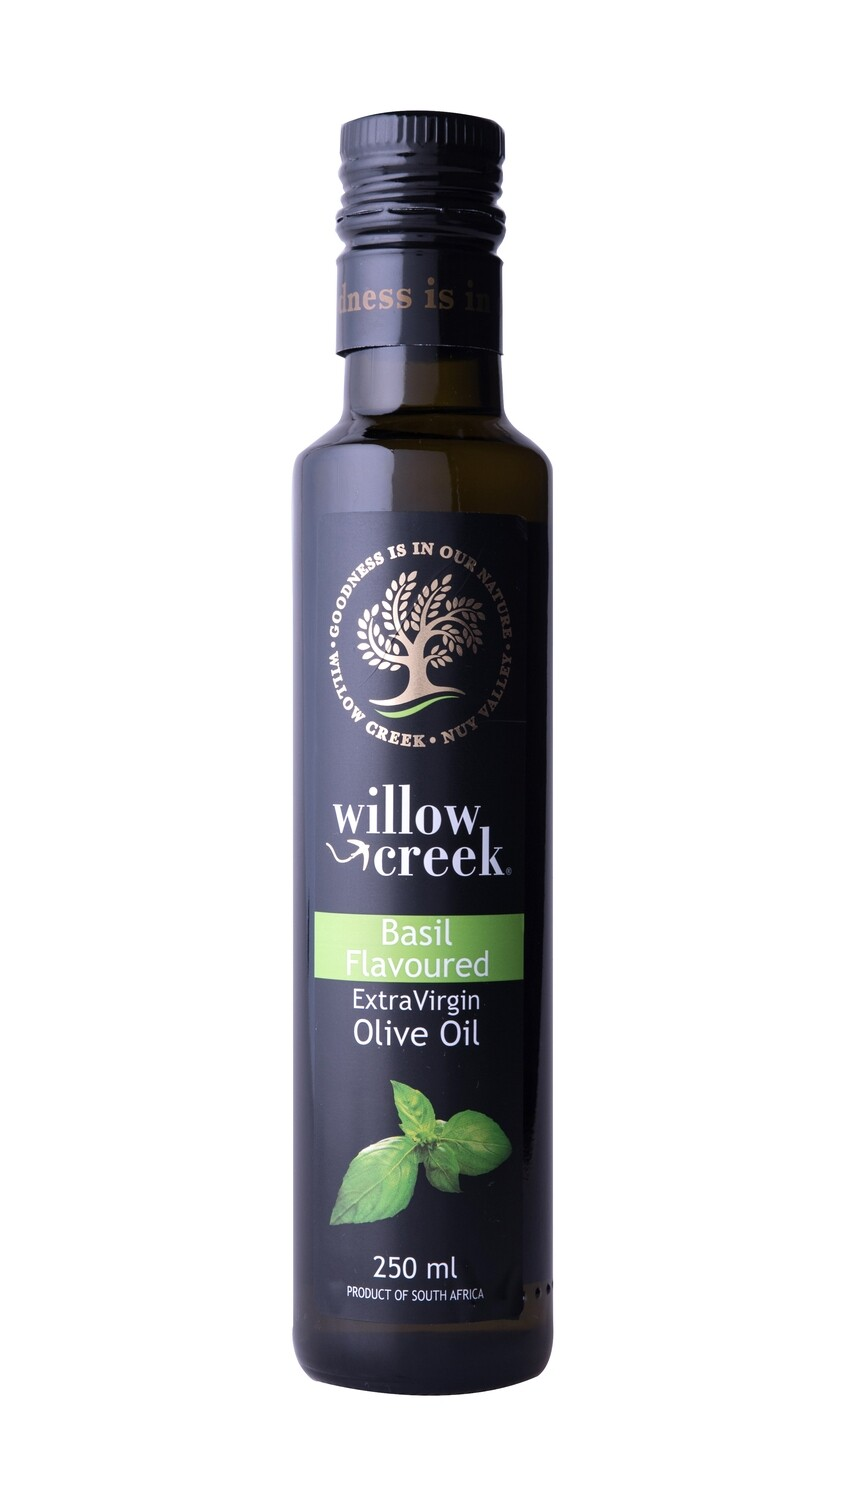 Willow Creek flavoured Basil infused EVOO 250 ml